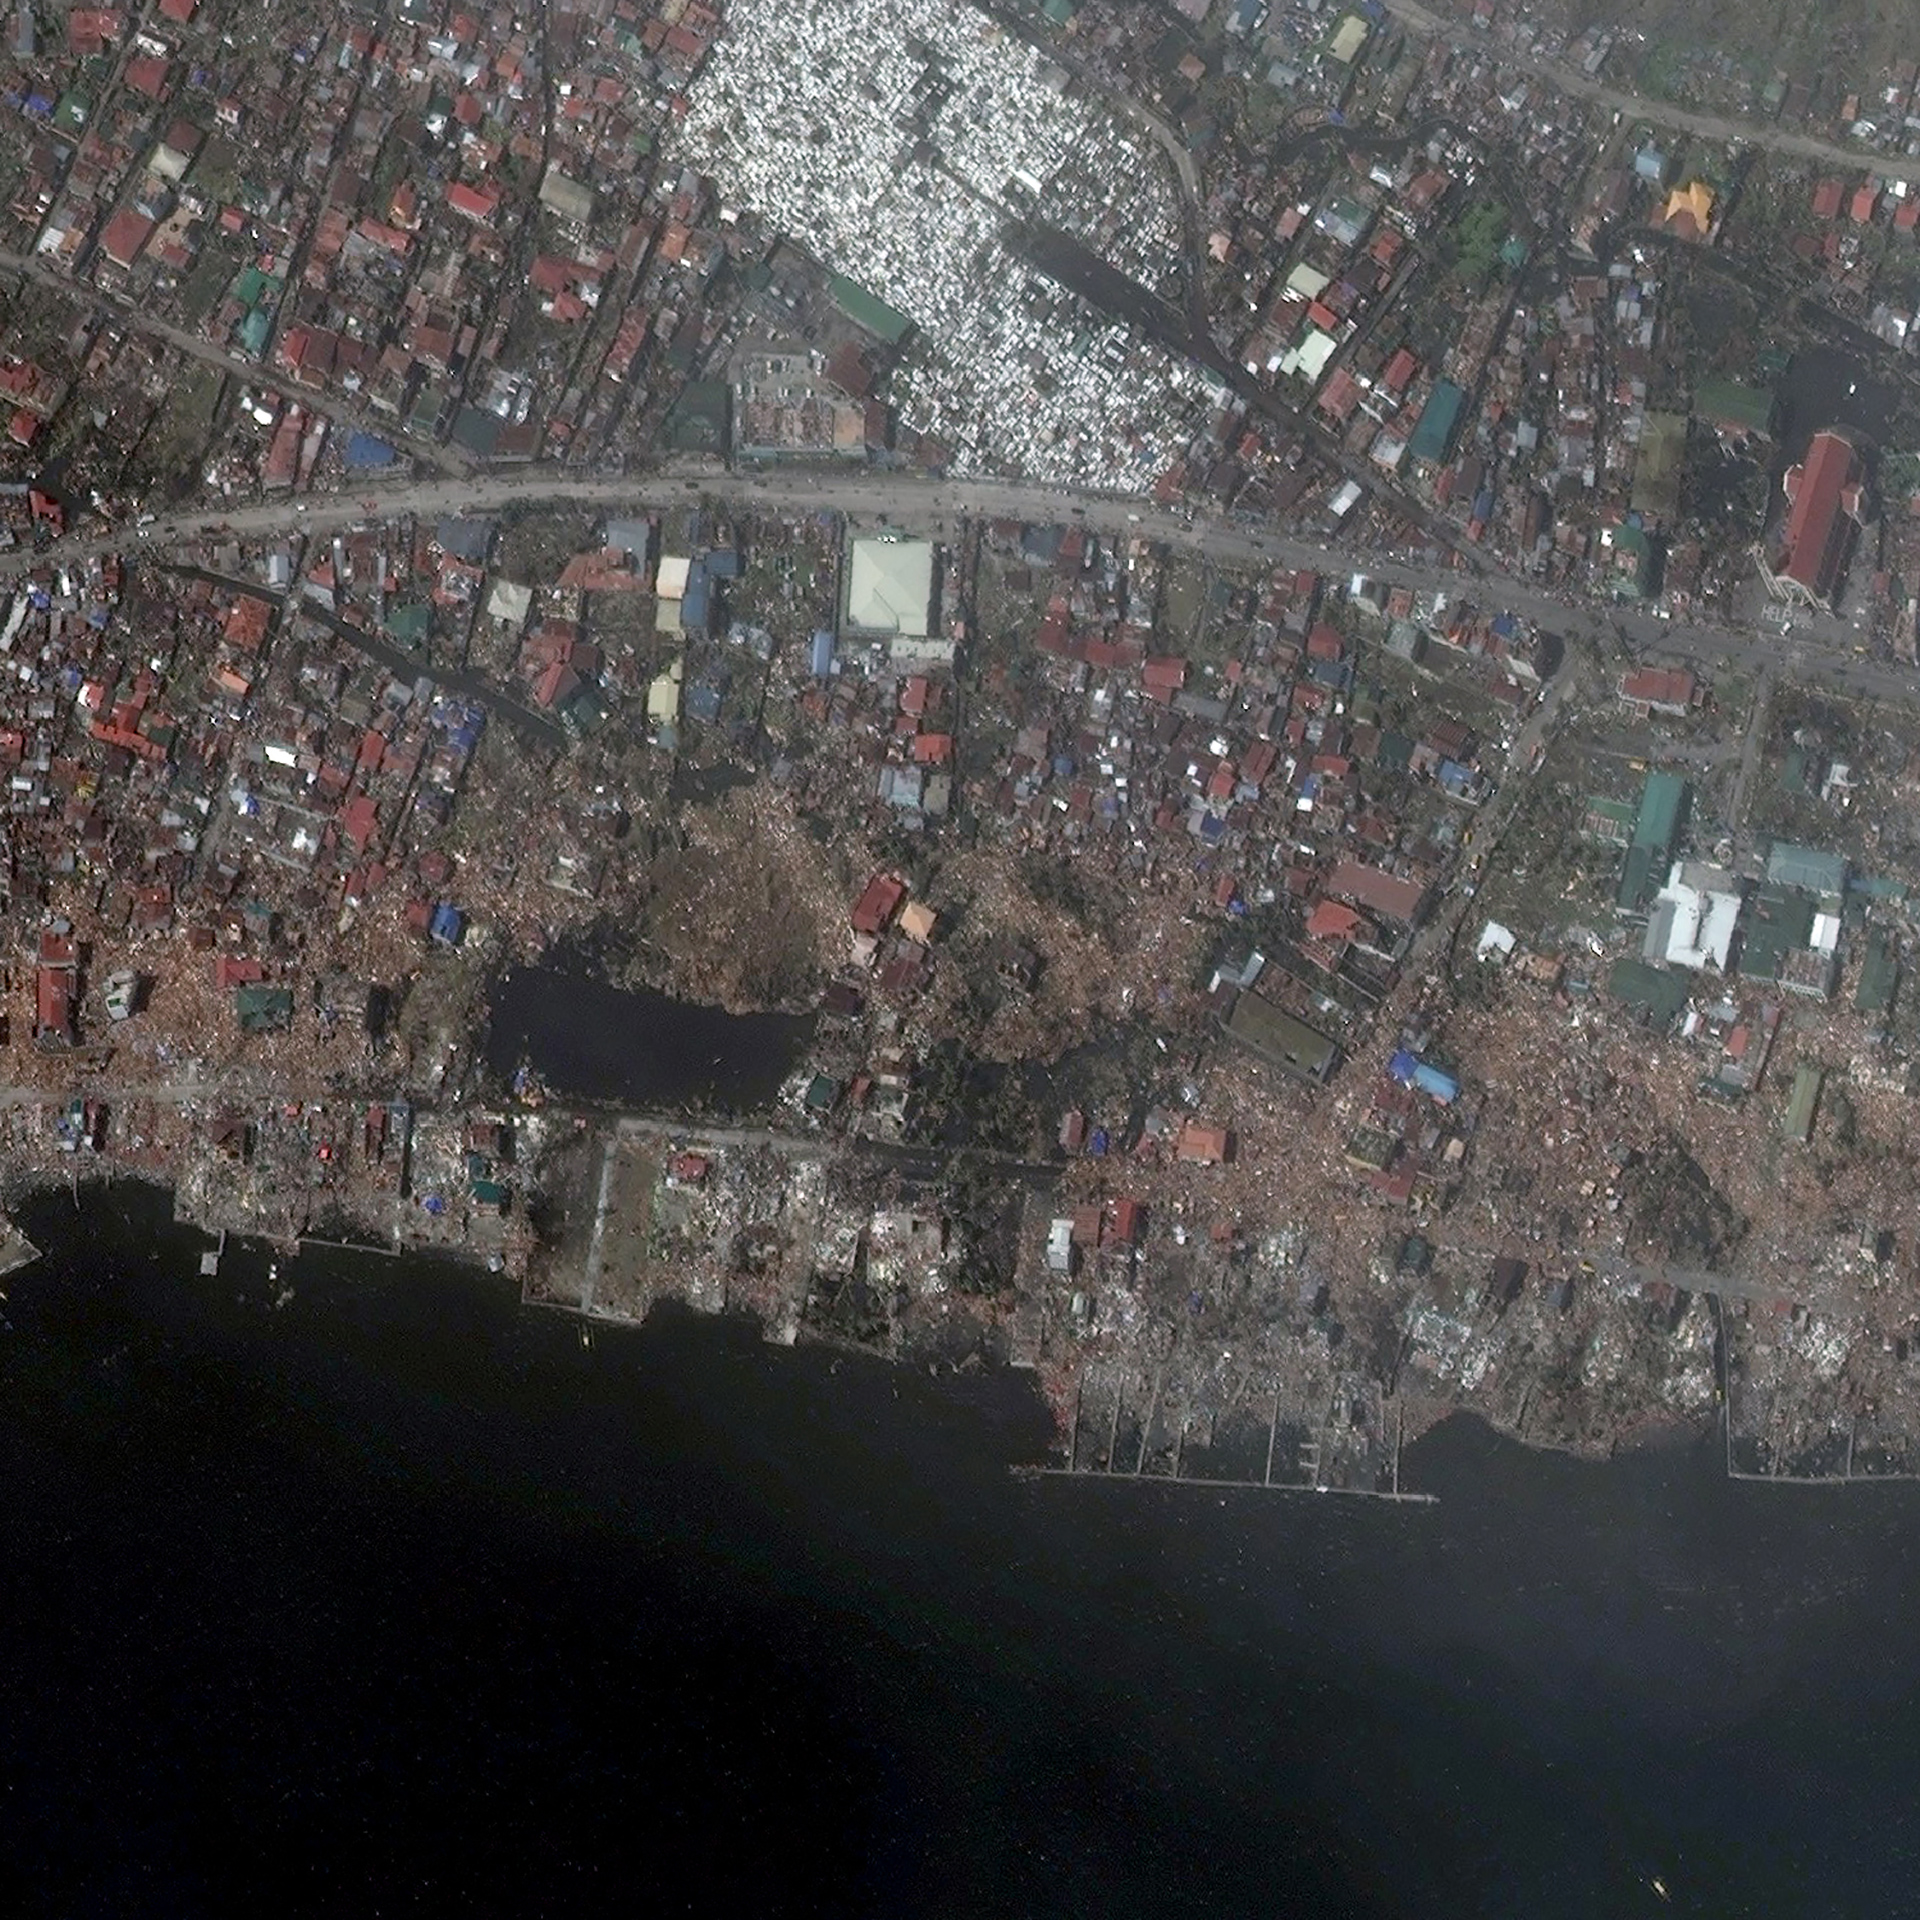 FIGURE 2. After: This image of Tacloban City was taken Nov. 10, 2013, showing damage from Typhoon Haiyan. Image courtesy of DigitalGlobe